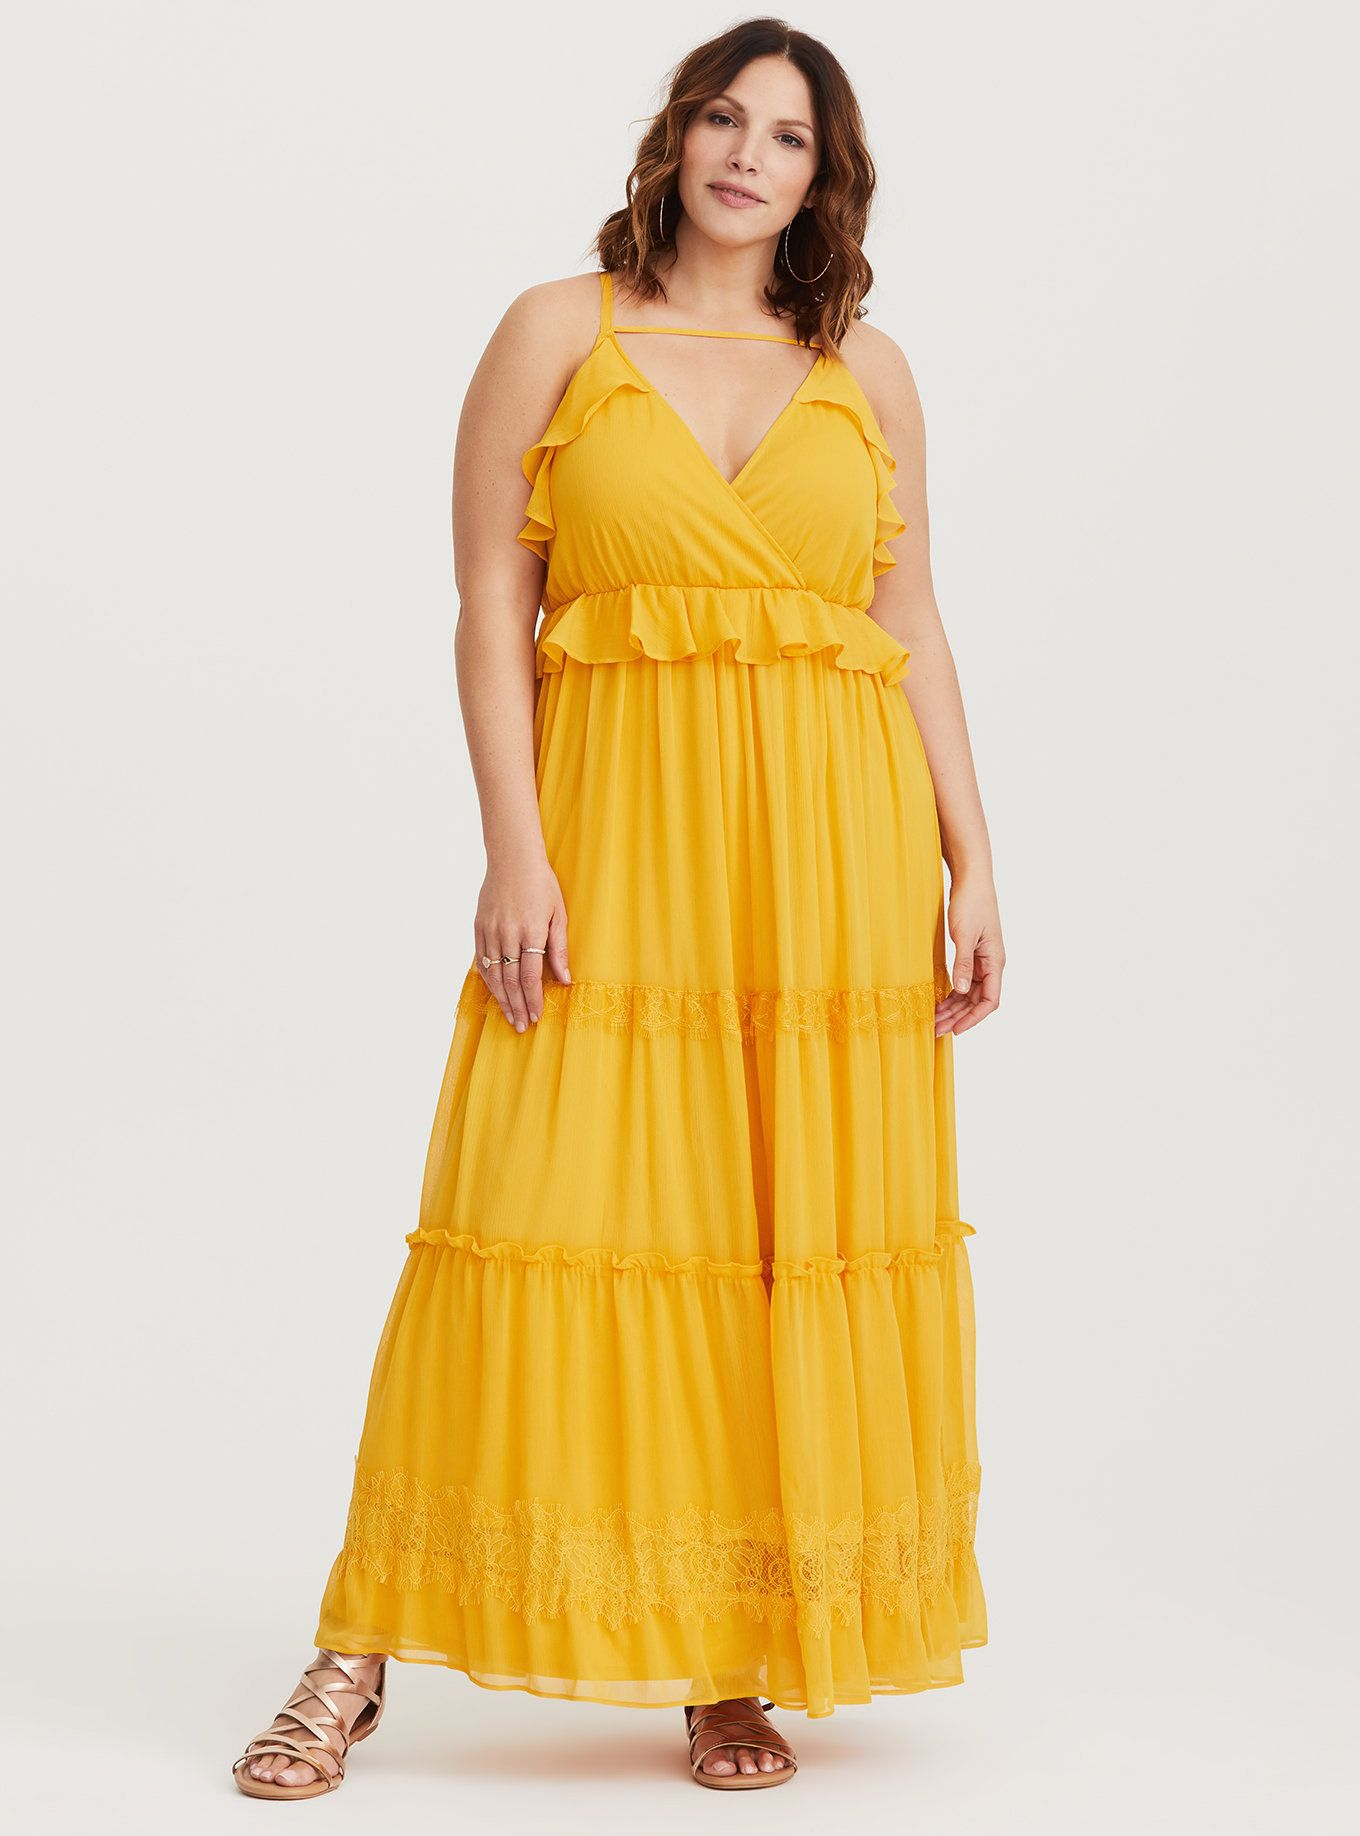 5bc1e793837a3 Yellow Chiffon Maxi Dress in 2019 | I Feel Pretty | Chiffon maxi ...